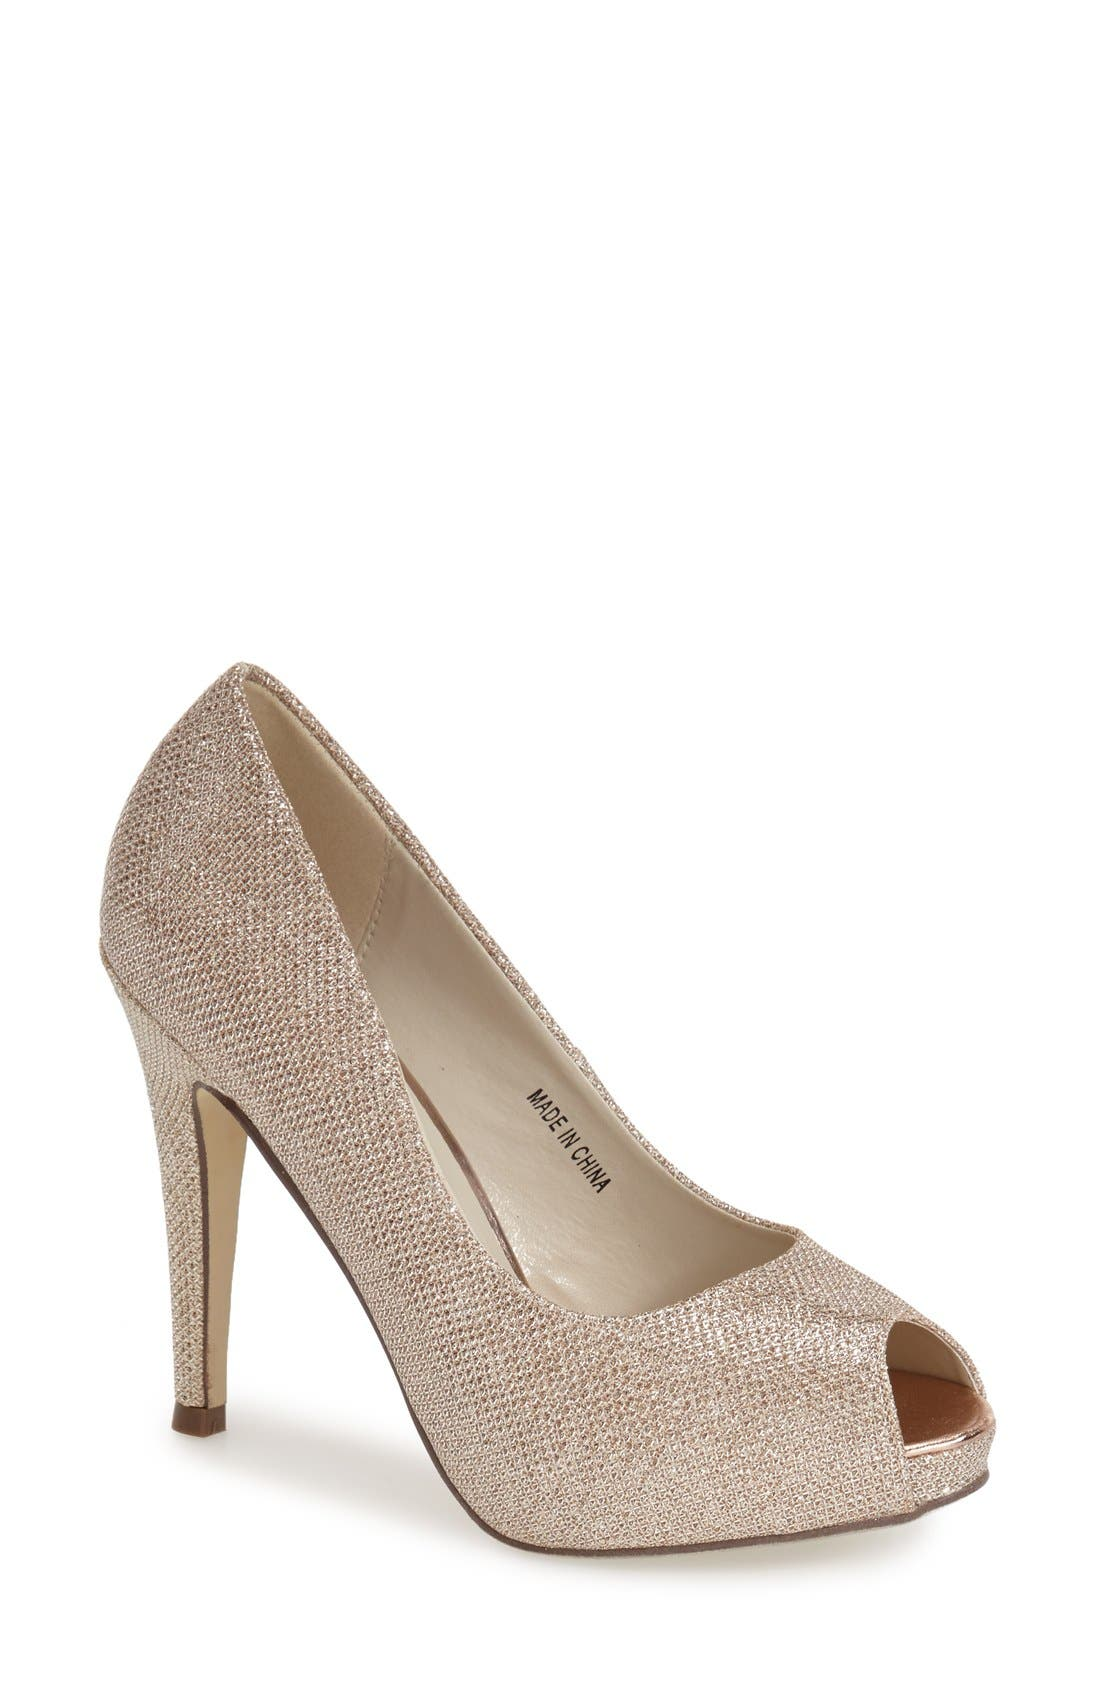 Main Image - pink paradox london 'Yummy' Glitter Peep Toe Pump (Women)